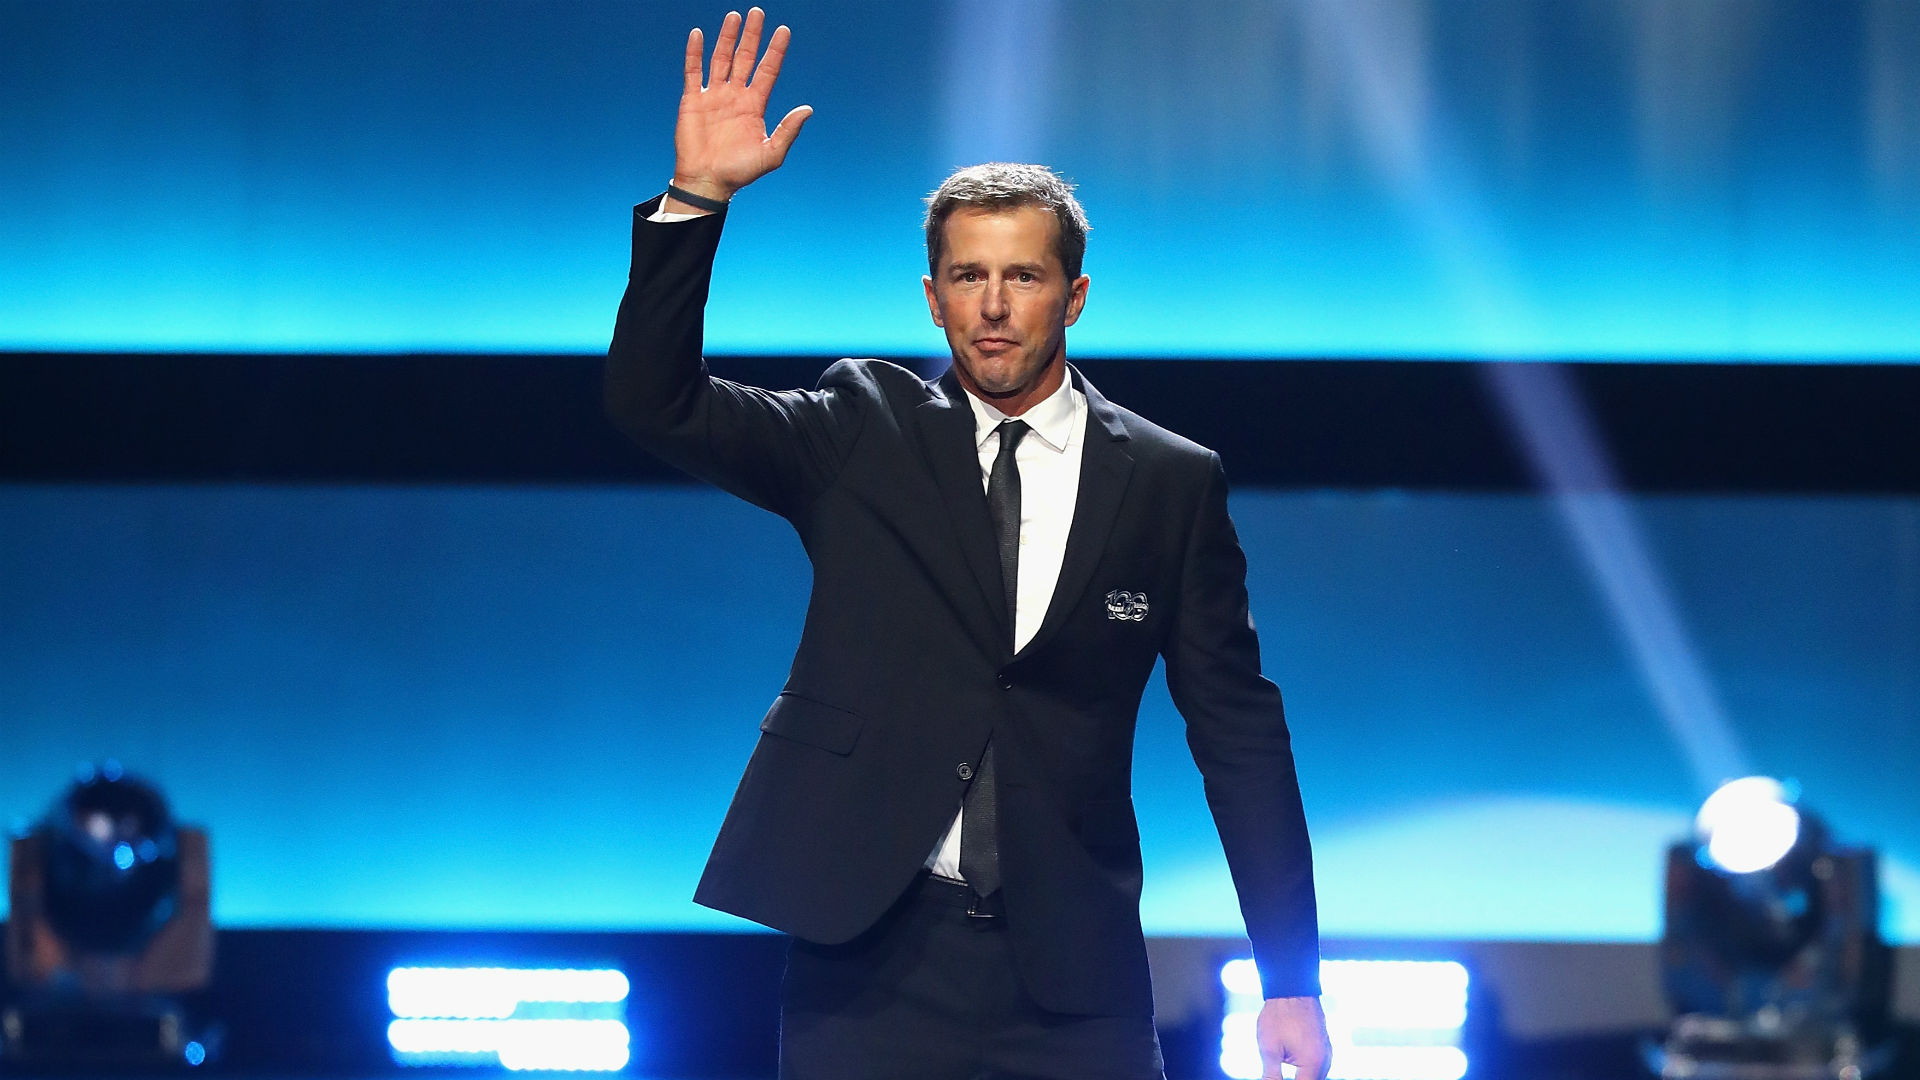 Mike-modano-102017-getty-ftrjpeg_1usxq6dotvdca1xtql7xkvelor